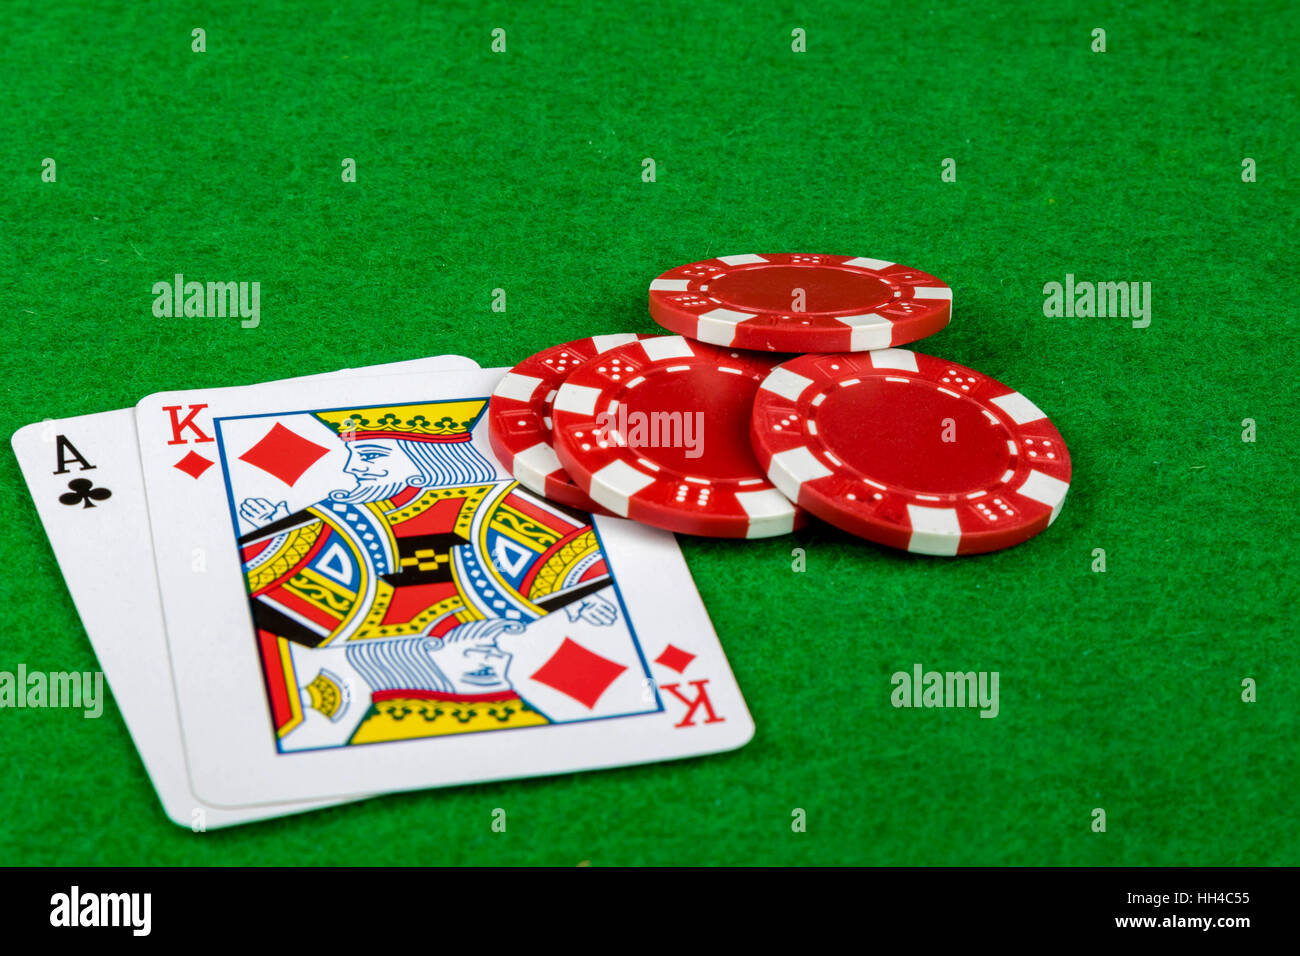 Blackjack 21 - Stock Image